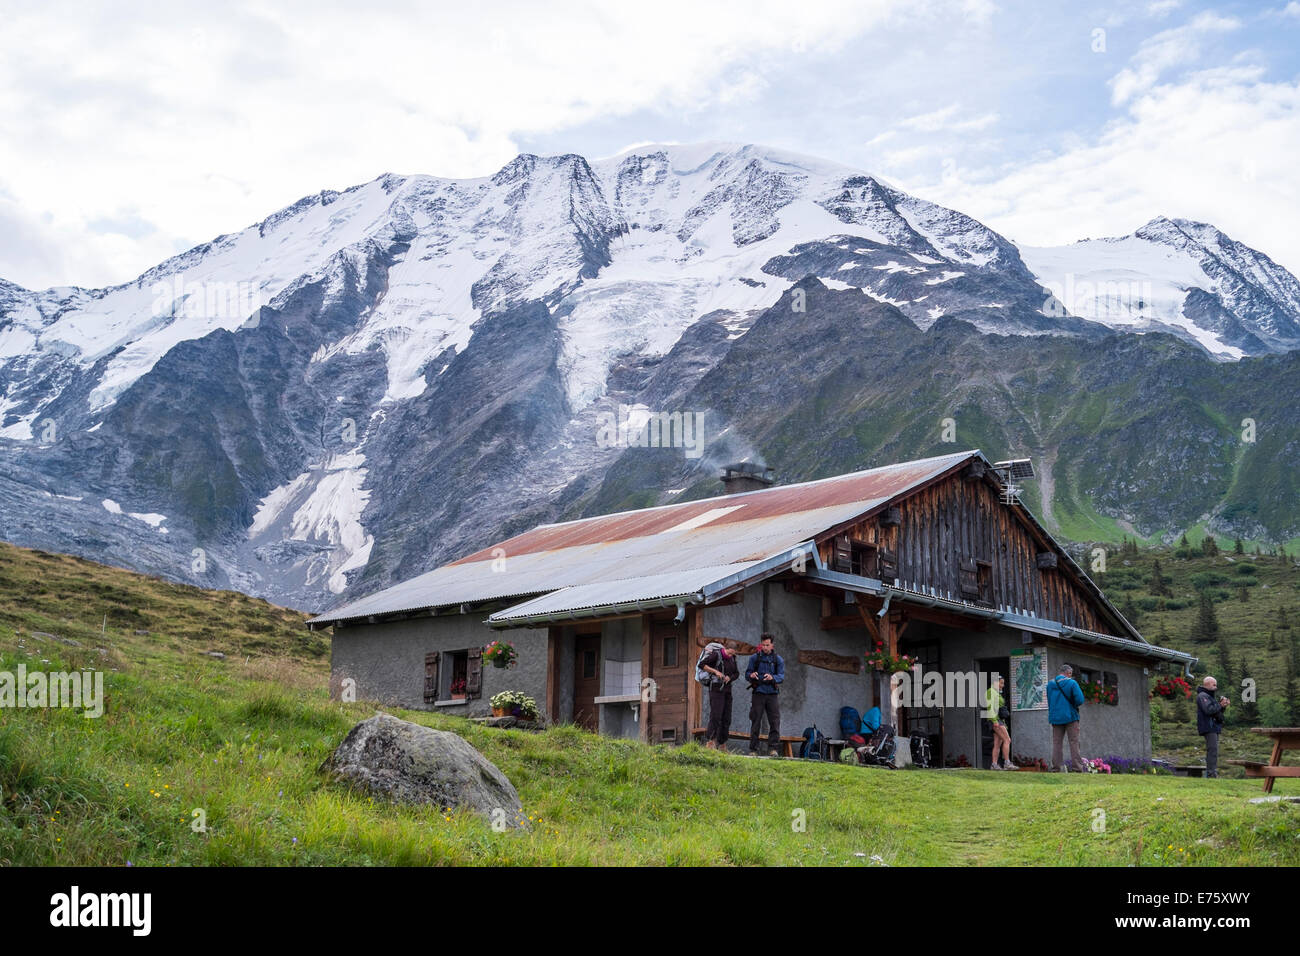 ST-GERVAIS-LES-BAINS, FRANCE - AUGUST 25: Hikers at the Truc Hostel, at bottom of the Domes de Miage mountain. This - Stock Image